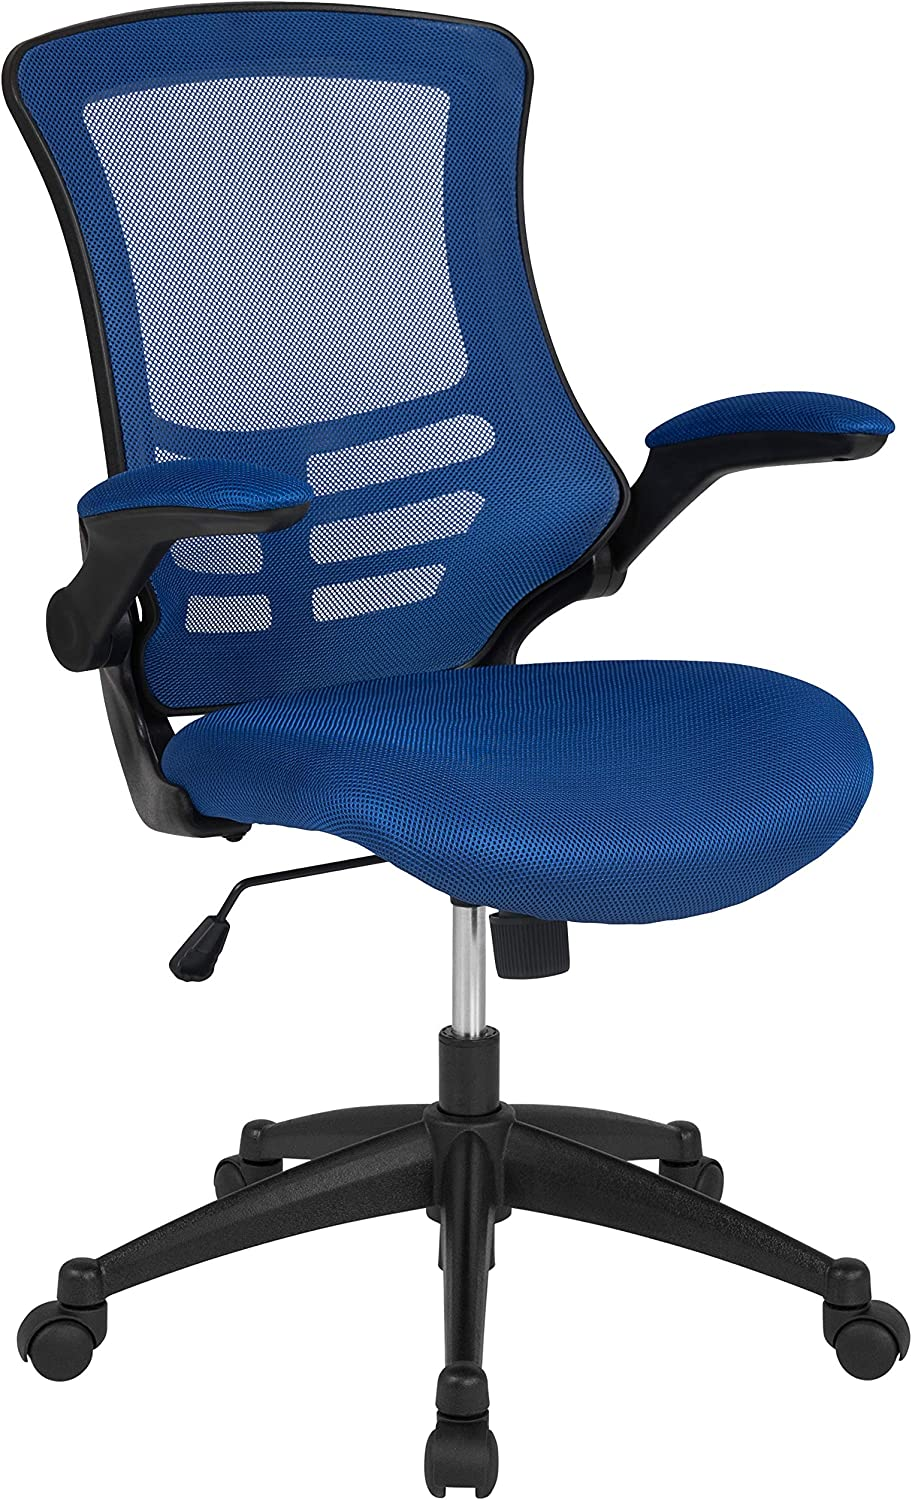 Flash Furniture Mid-Back Blue Mesh Swivel Ergonomic Task Office Chair with Flip-Up Arms, BIFMA Certified